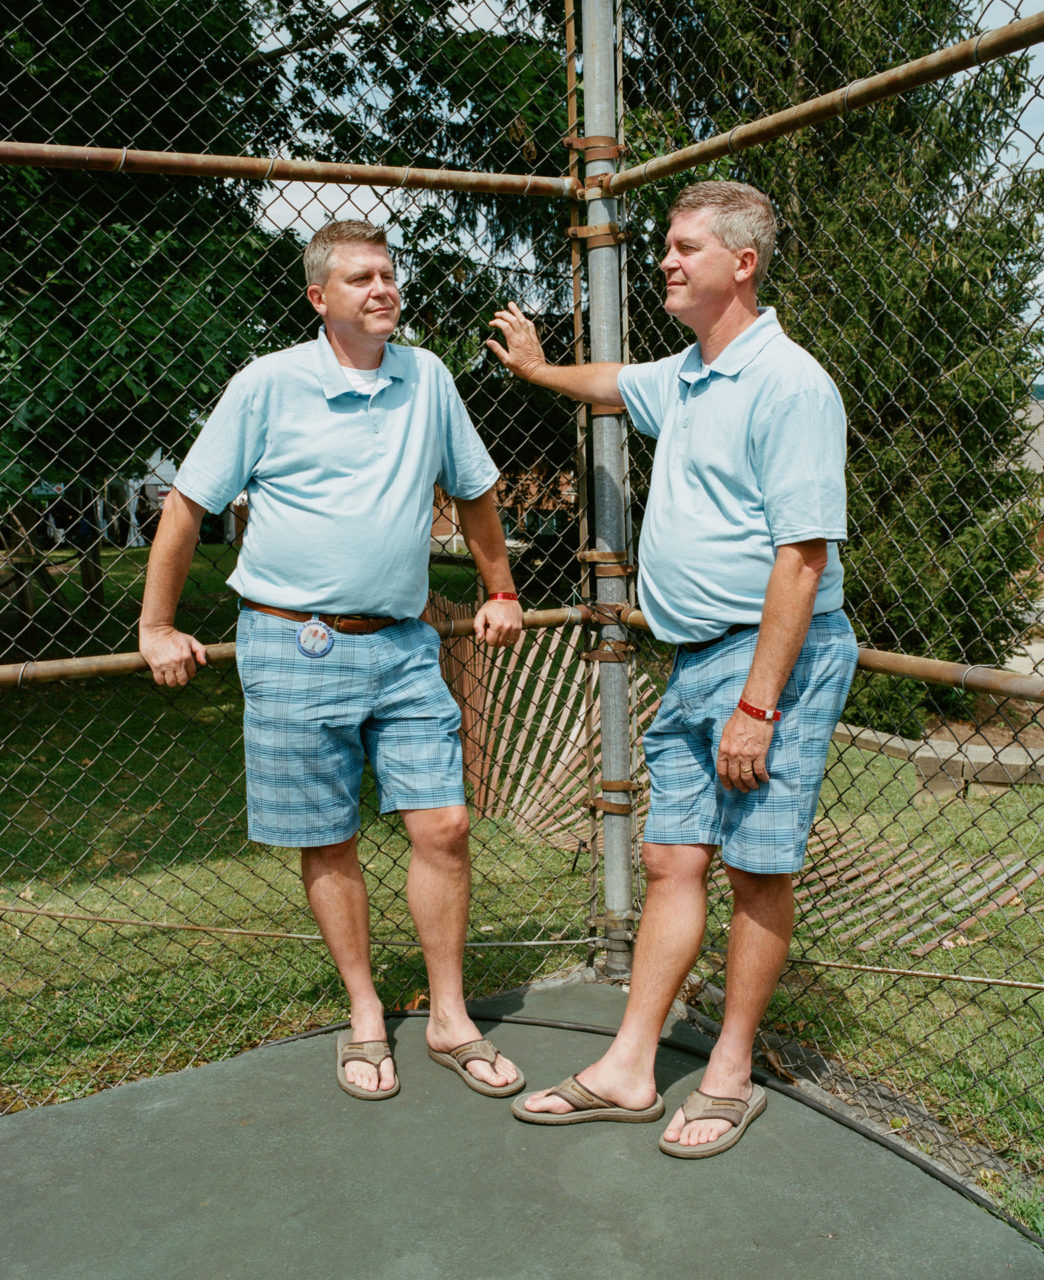 Chris and John, 51, government workers from Cincinnati and Pittsburgh who've attended Twins Days for 20 straight years, married their wives months apart. Their baby girls were born months apart, then their boys also. Chris is the more disciplined one.